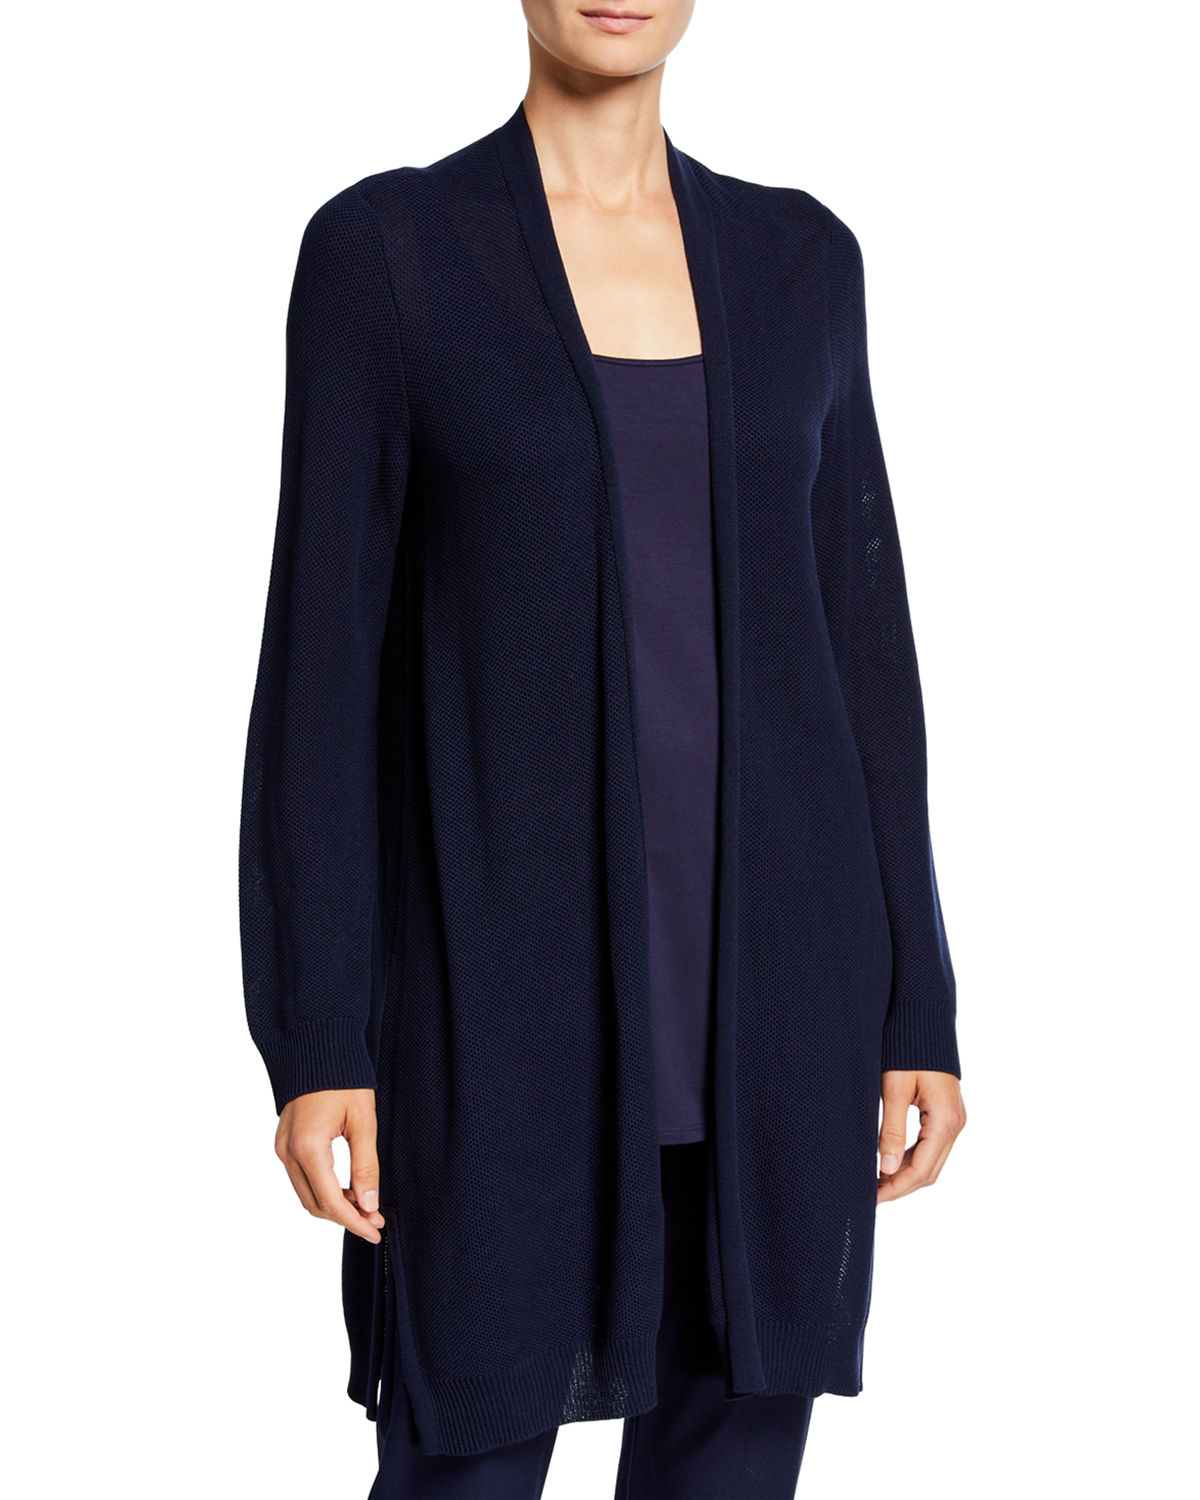 Eileen Fisher Tops PLUS SIZE LYOCELL OPEN-FRONT CARDIGAN